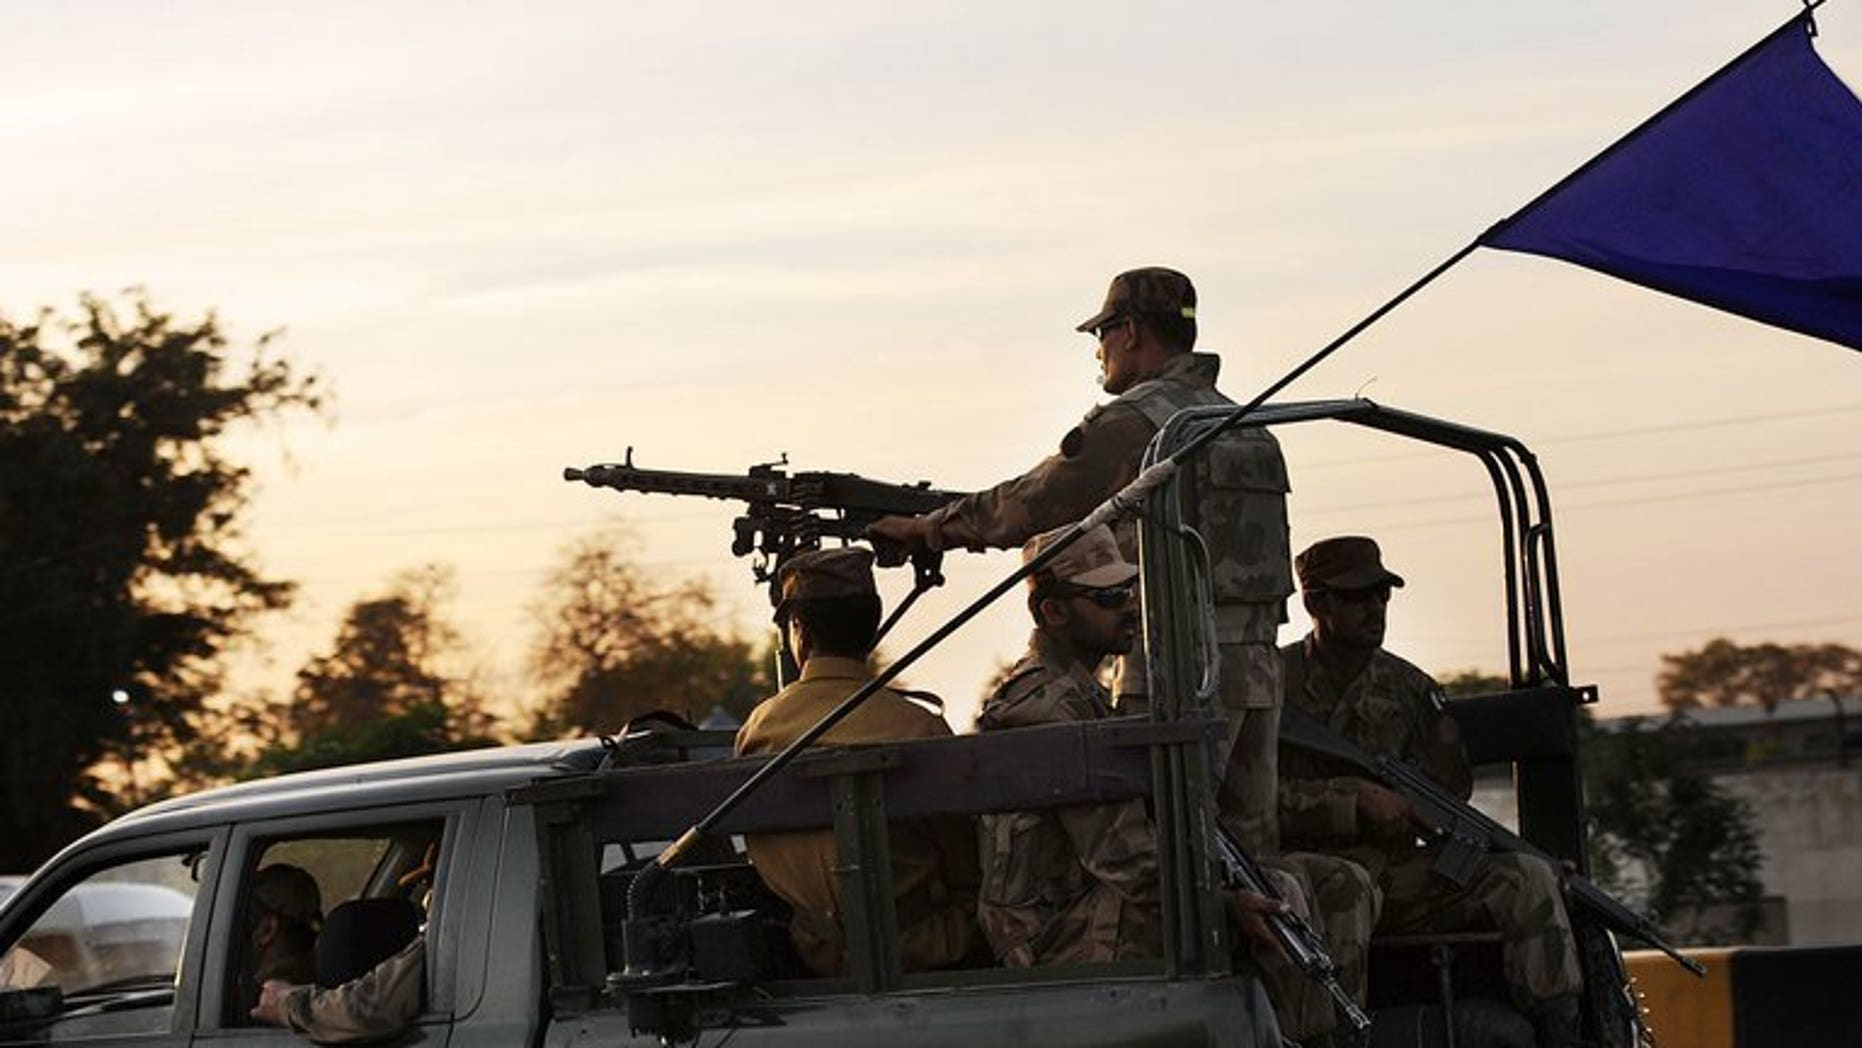 File picture shows troops deploying for the upcoming election in Nowshera, a district in the northwestern Pakistan province of Khyber Pakhtunkhwa, May 9, 2013. A roadside bomb attack on Sunday killed Pakistan's two senior military officers and a soldier in the country's troubled northwest, the military said.